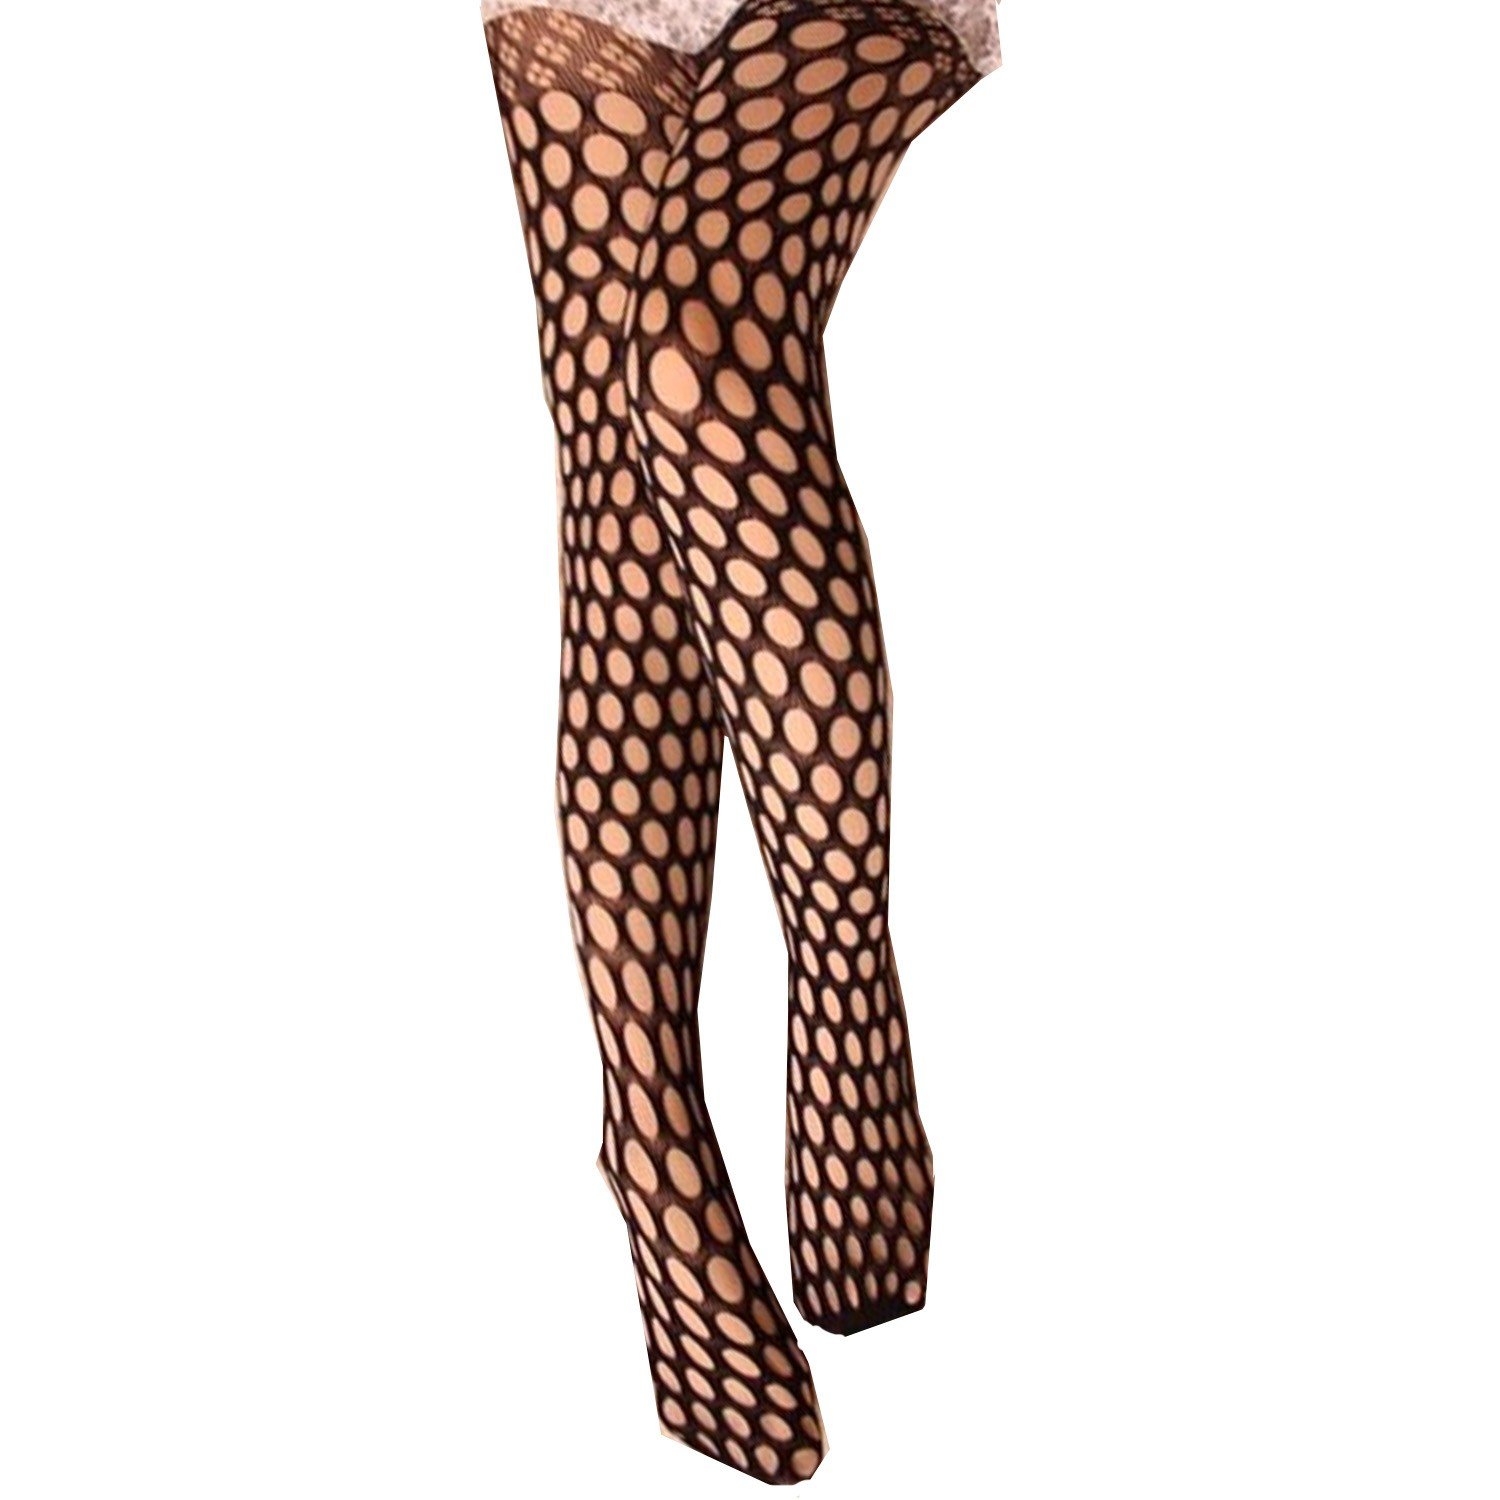 Polka Dot Fishnet Pantyhose Tights - A857#